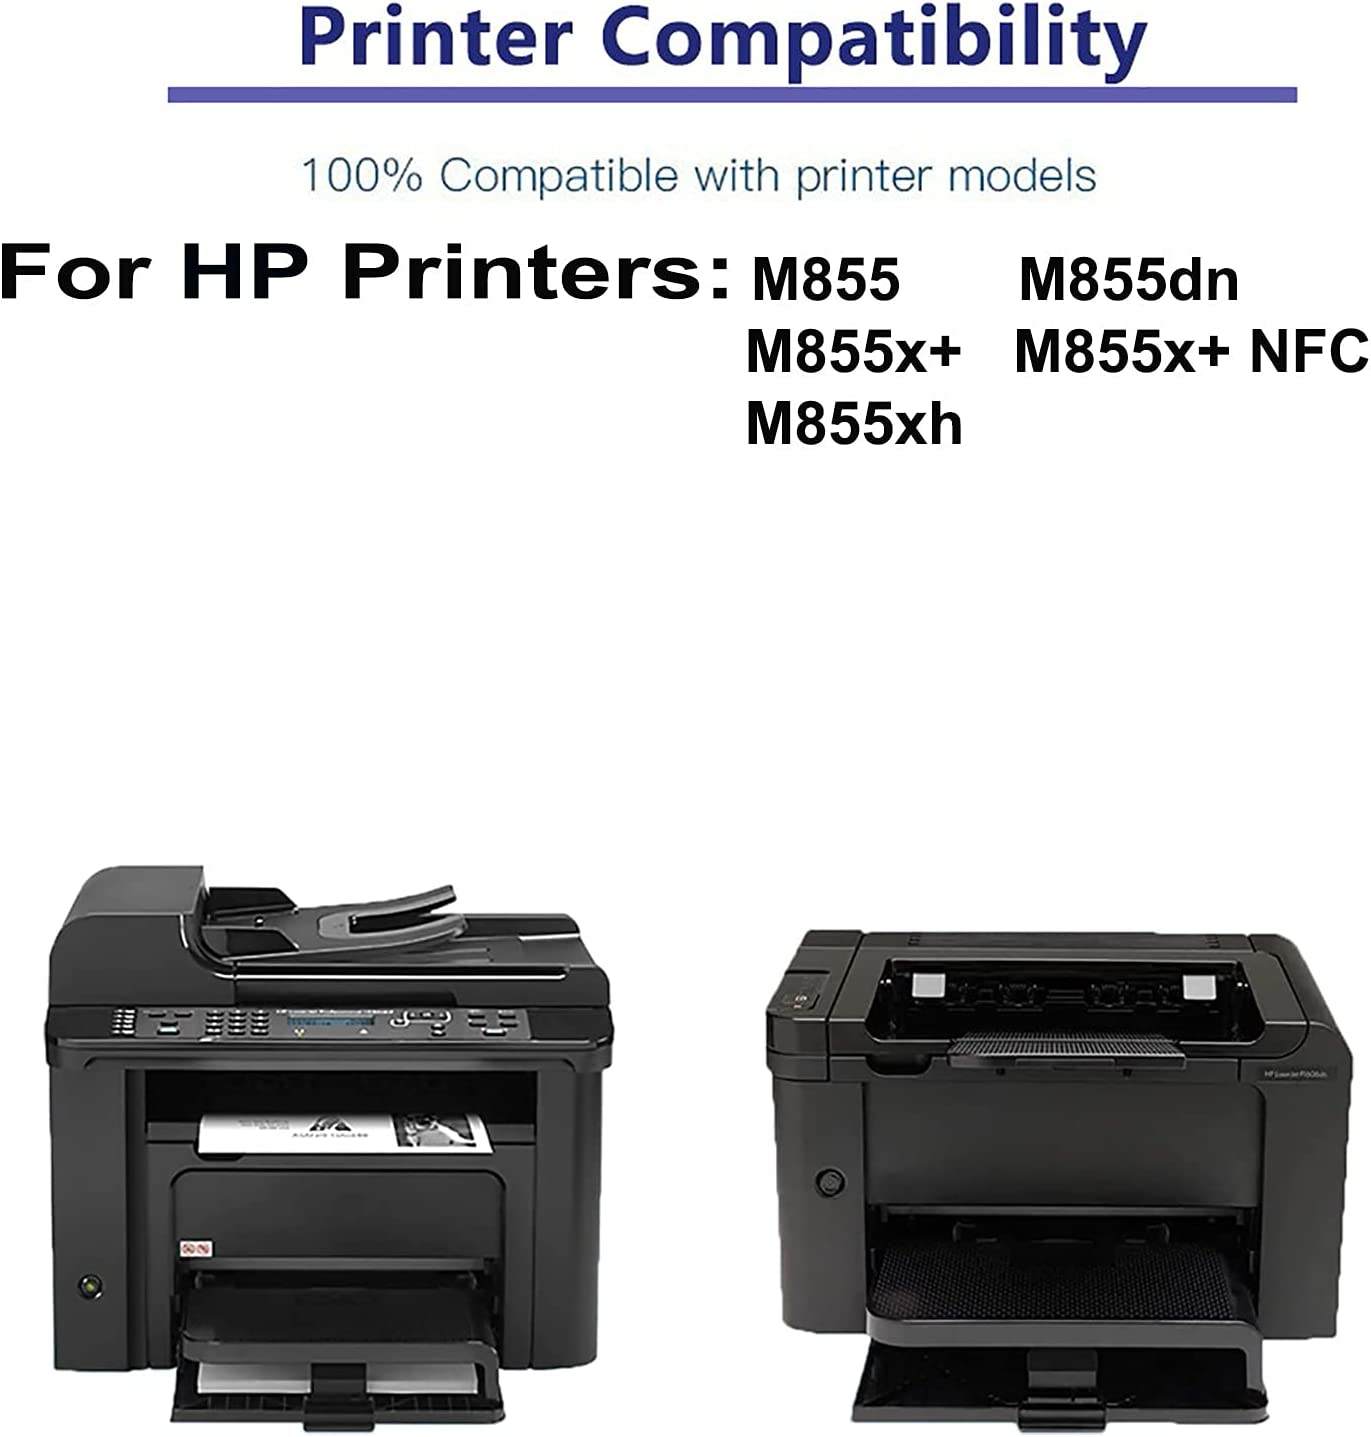 1-Pack (Yellow) Compatible High Yield 826A (CF312A) Laser Printer Toner Cartridge use for HP M855, M855dn, M855x+, M855x+ NFC, M855xh Printer